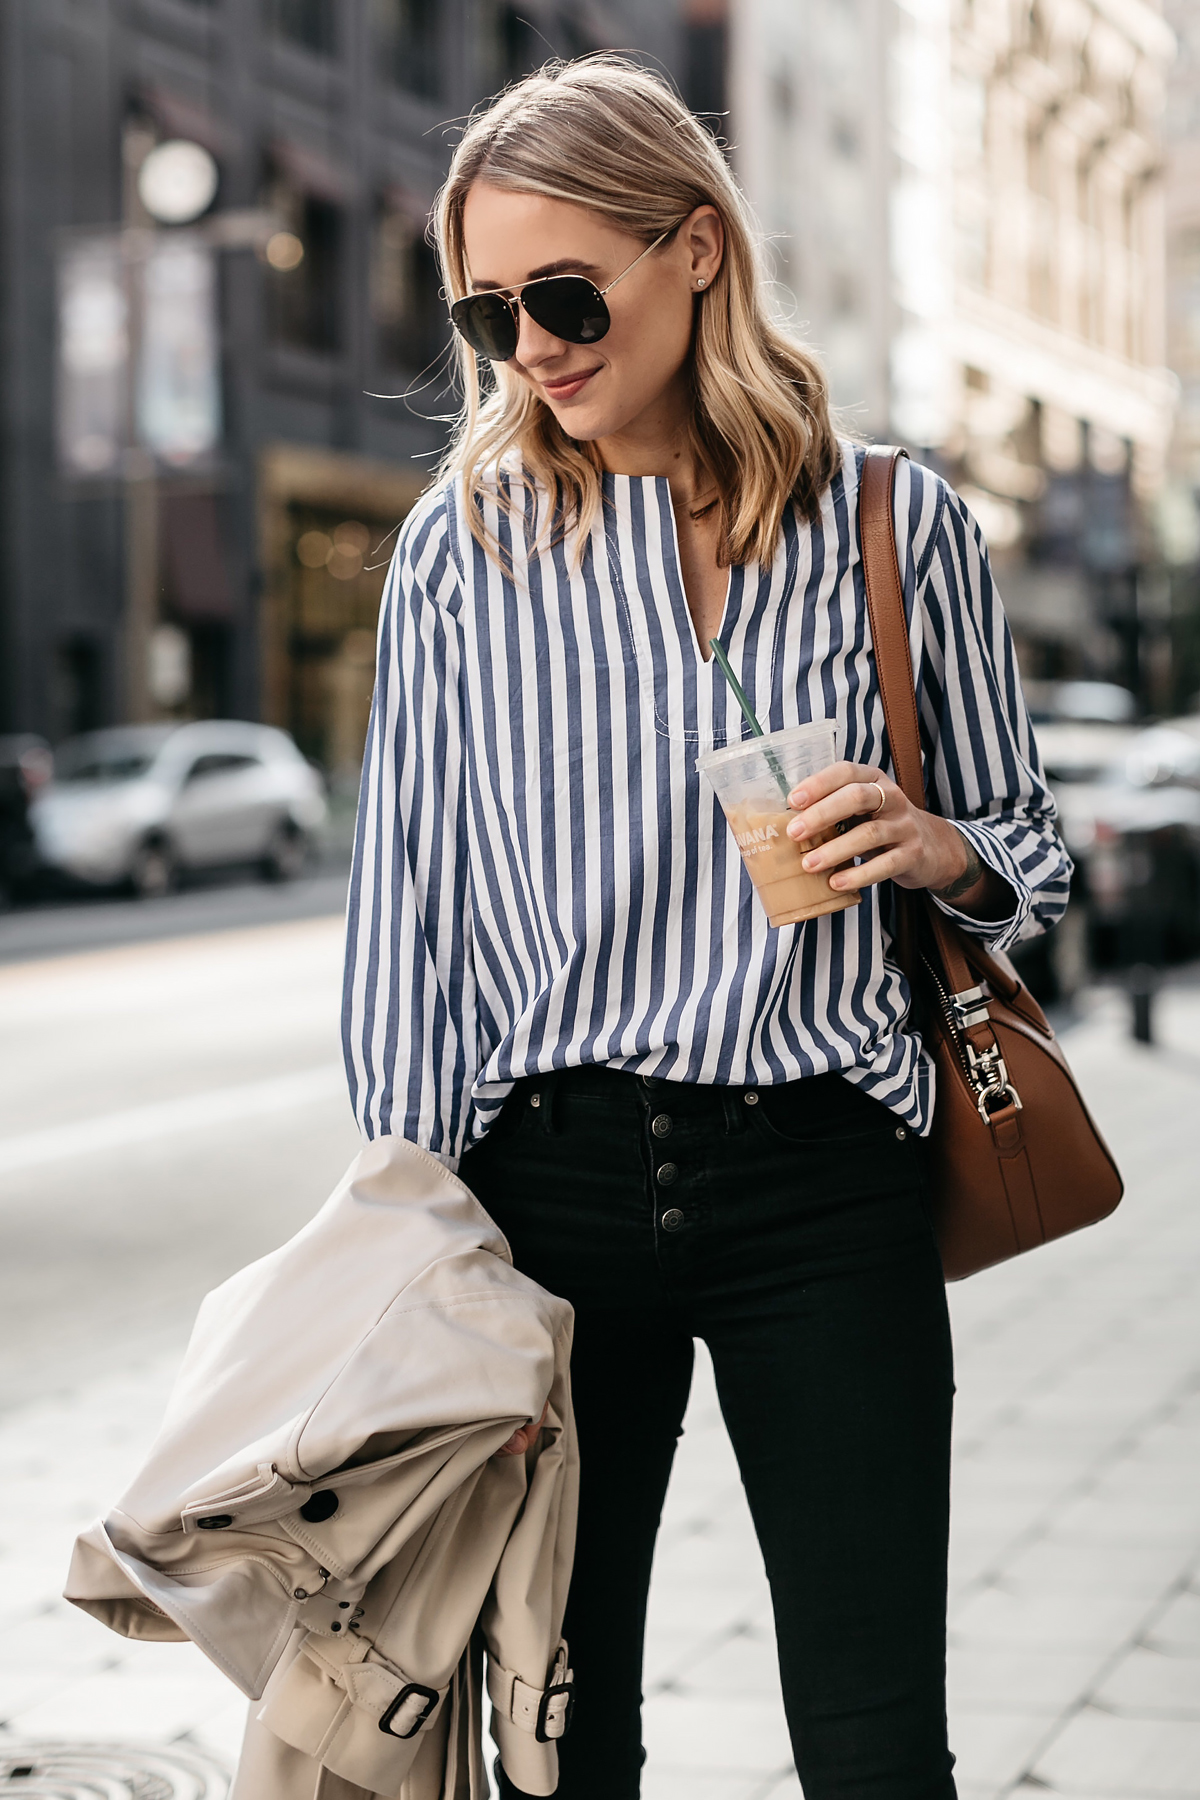 Blonde Woman Wearing Club Monaco Trench Coat Jcrew Blue White Stripe Top Madewell Black Skinny Jeans Givenchy Antigona Small Cognac Satchel Celine Aviator Sunglasses Fashion Jackson Dallas Blogger Fashion Blogger Street Style